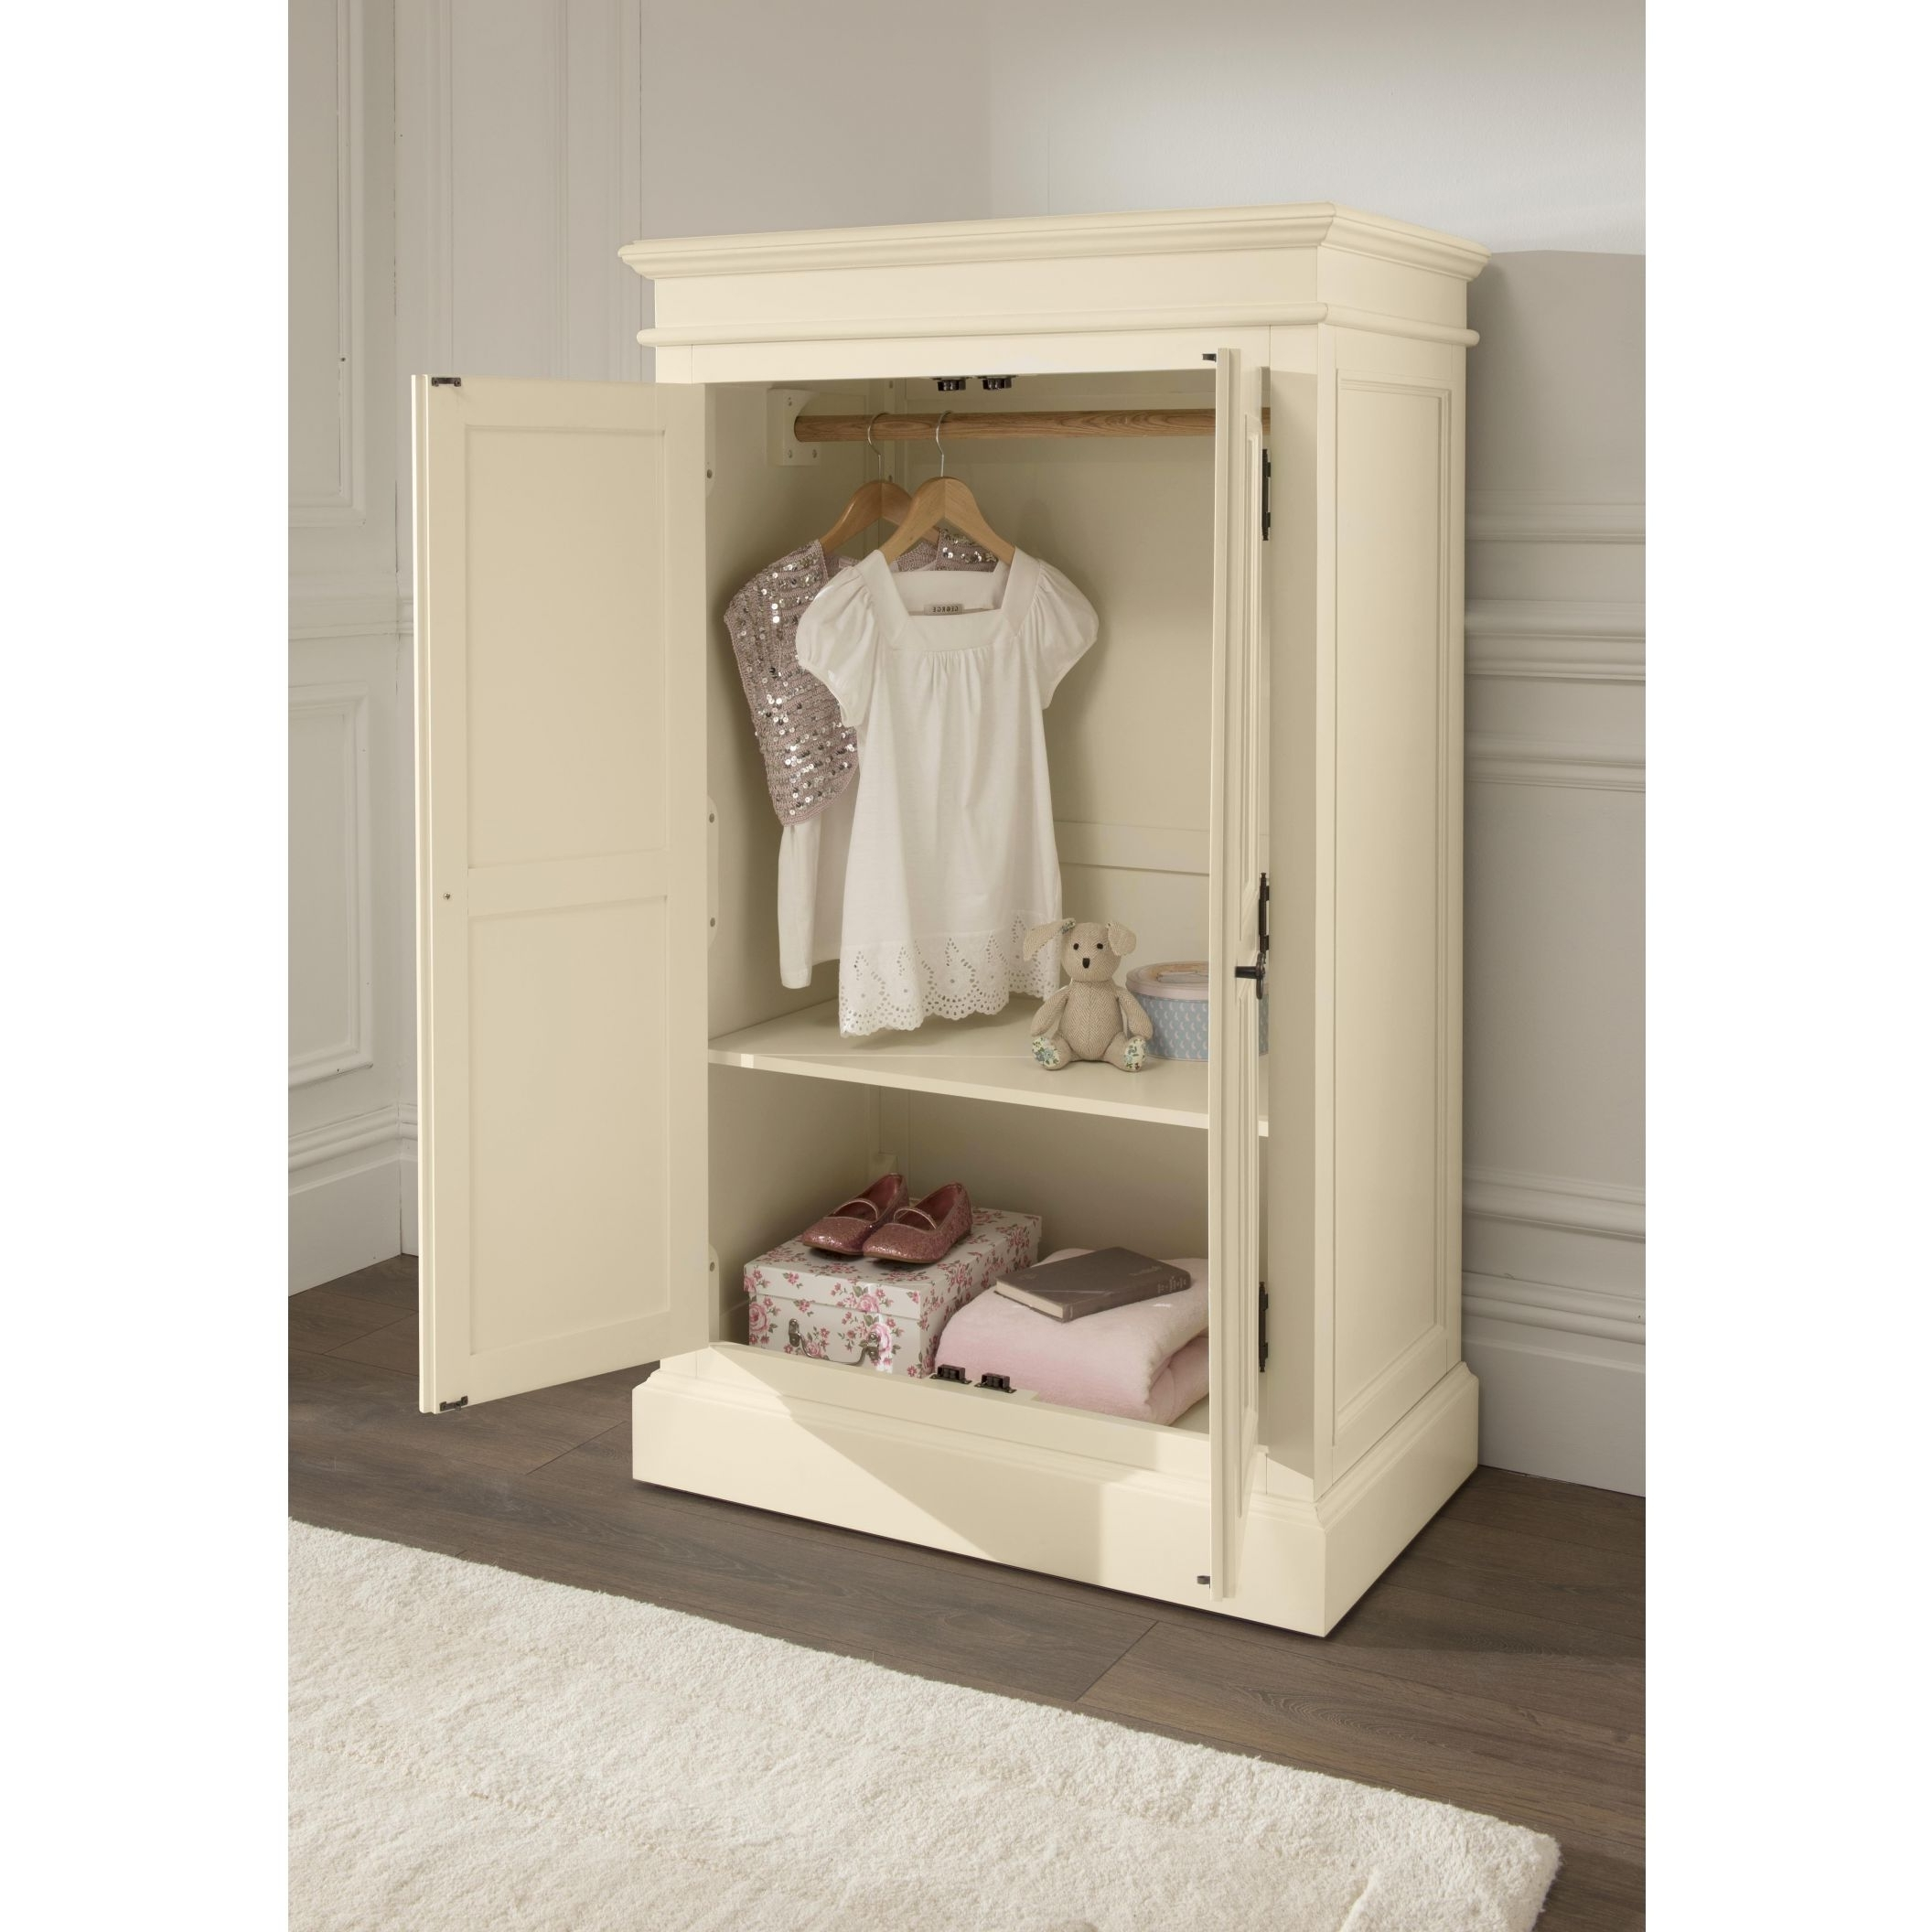 Chic Wardrobes For Well Known Shabby Chic Small Wardrobe (View 6 of 15)